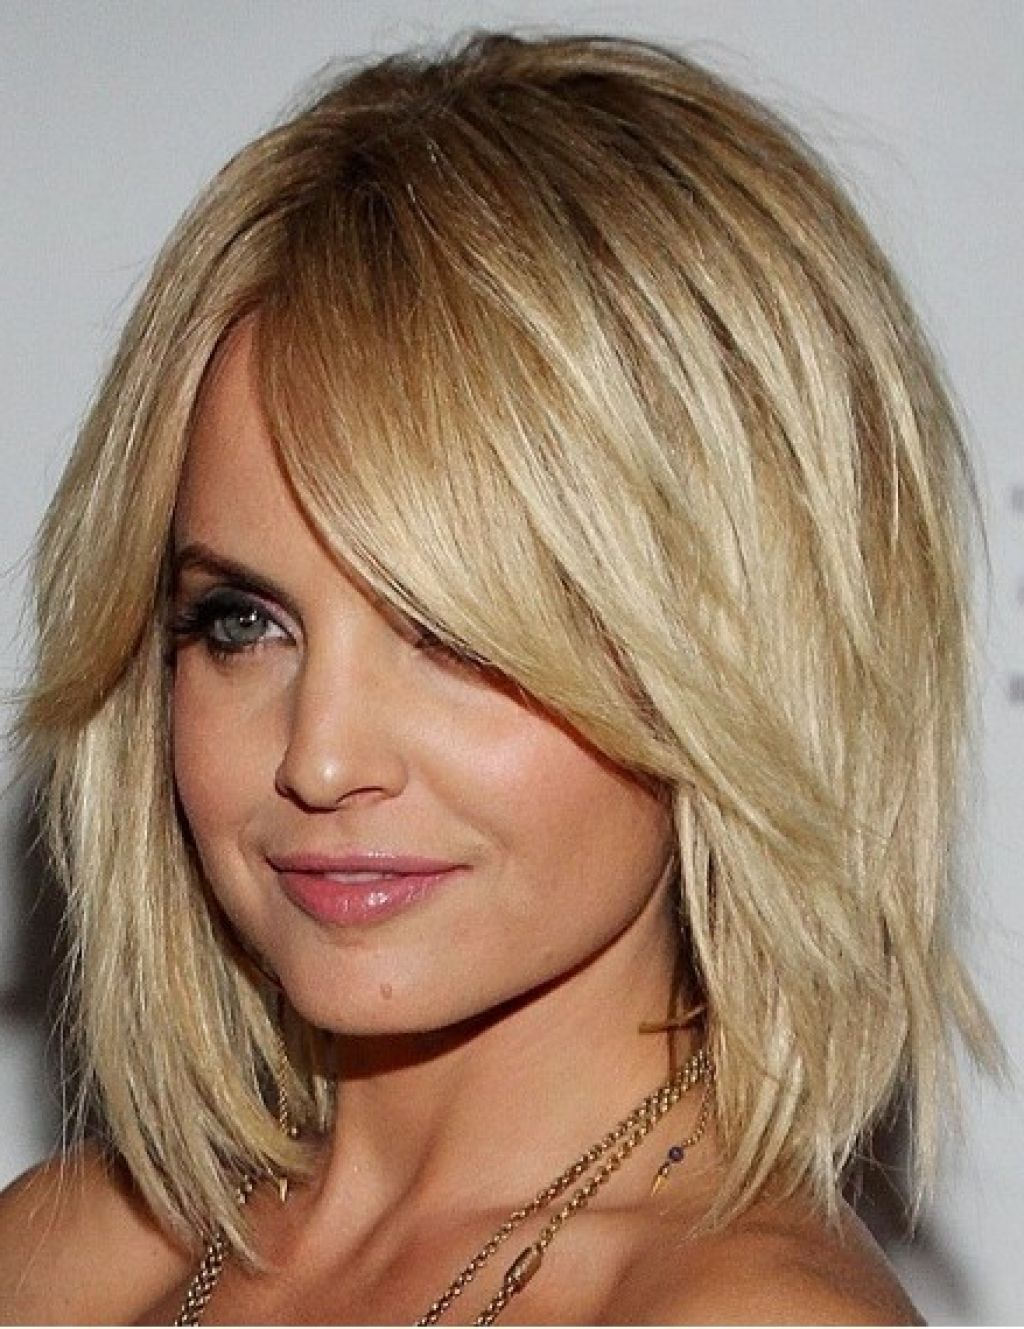 Medium Long Hair For 2016 Trendy Hairstyles 2015 2016